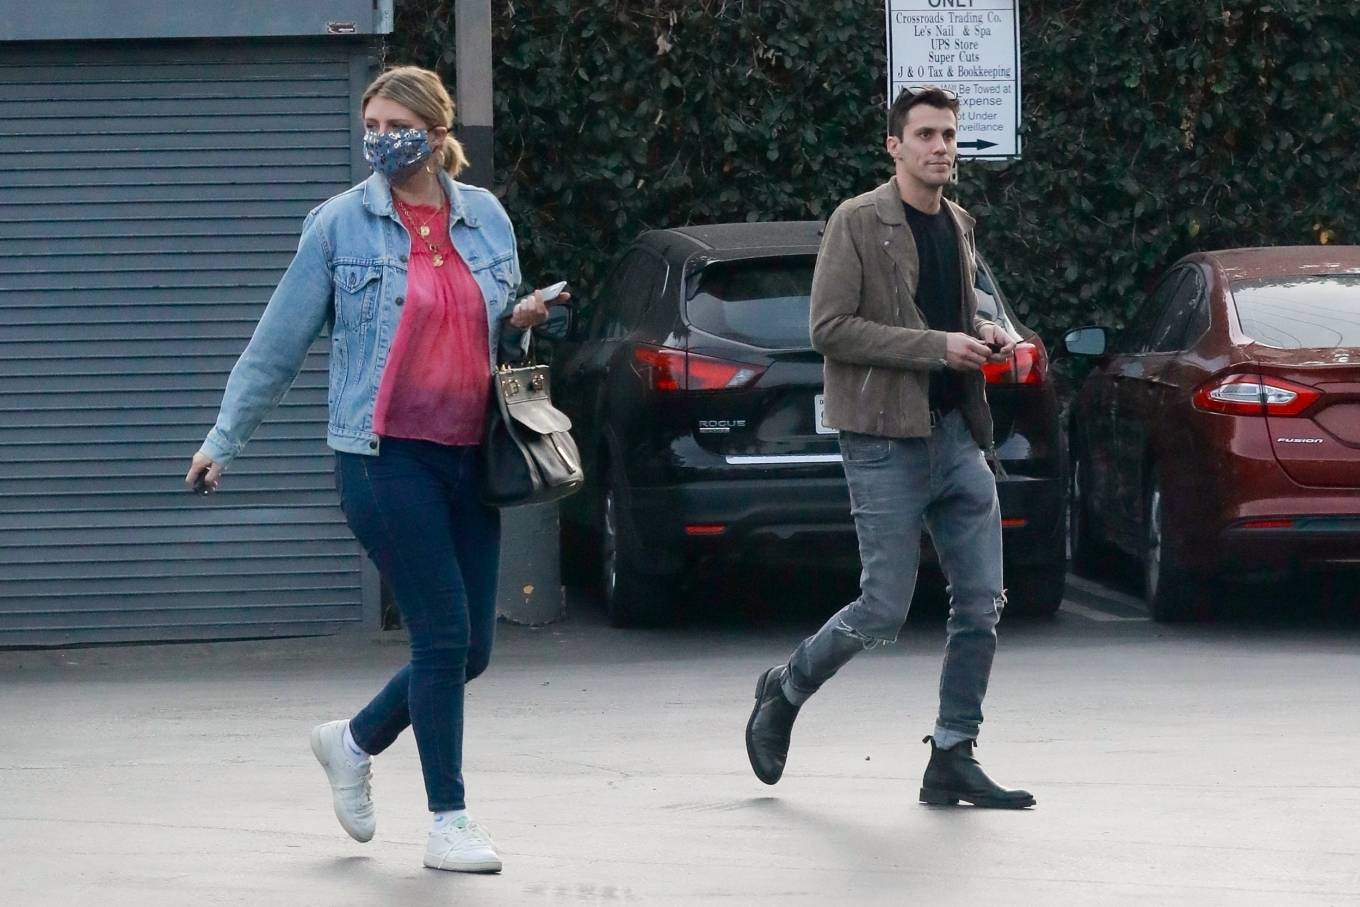 Mischa Barton 2020 : Mischa Barton – And her boyfriend Gian Marco Flamini at Tomato Pie Pizza Joint in Los Angeles -02